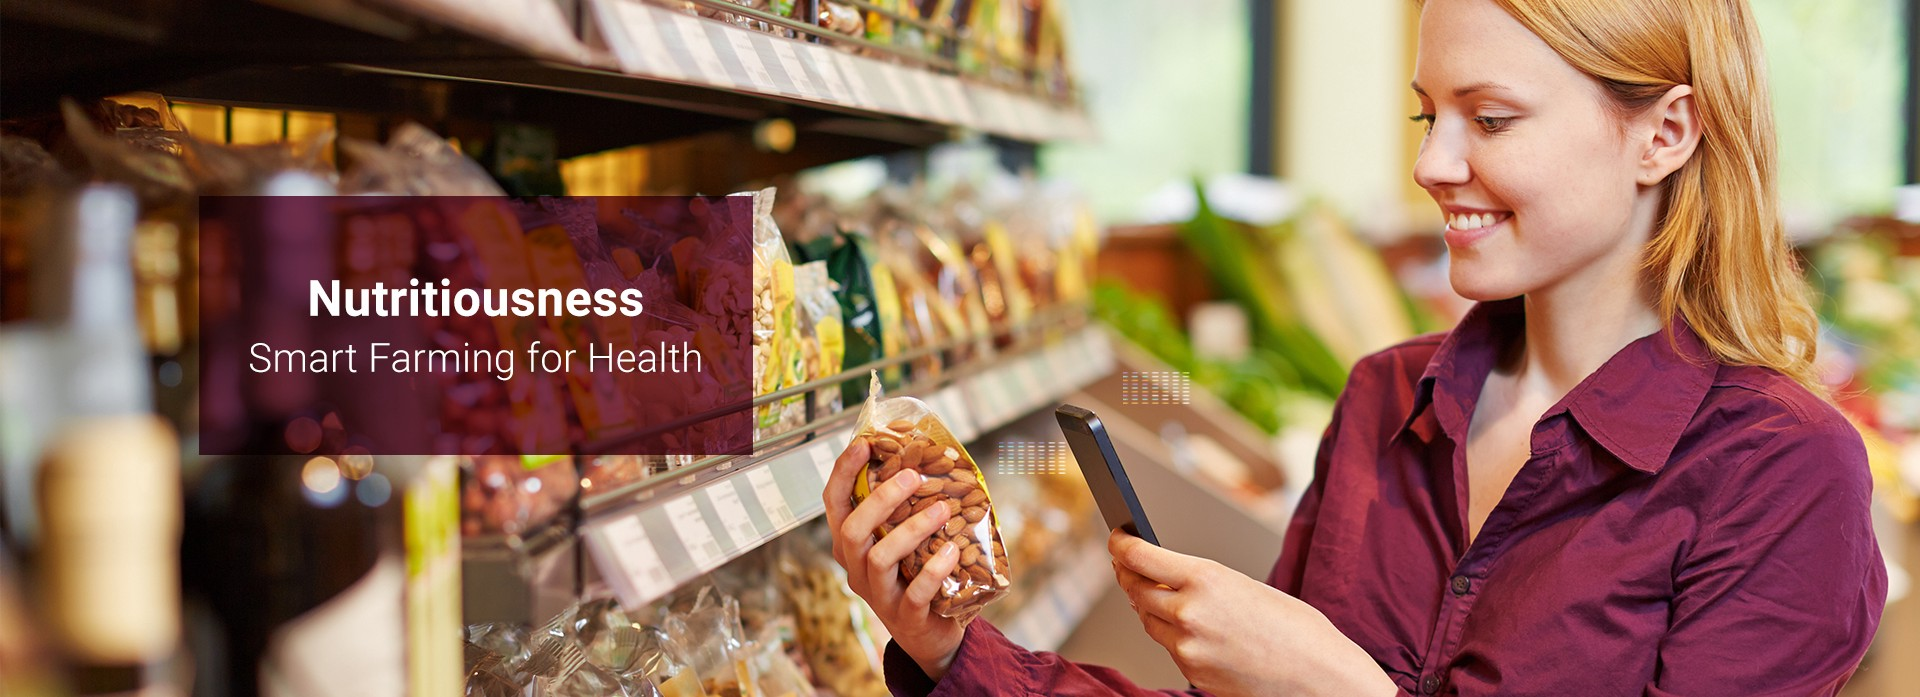 """Banner Image: """"Nutritiousness: Smart Farming for Health"""""""